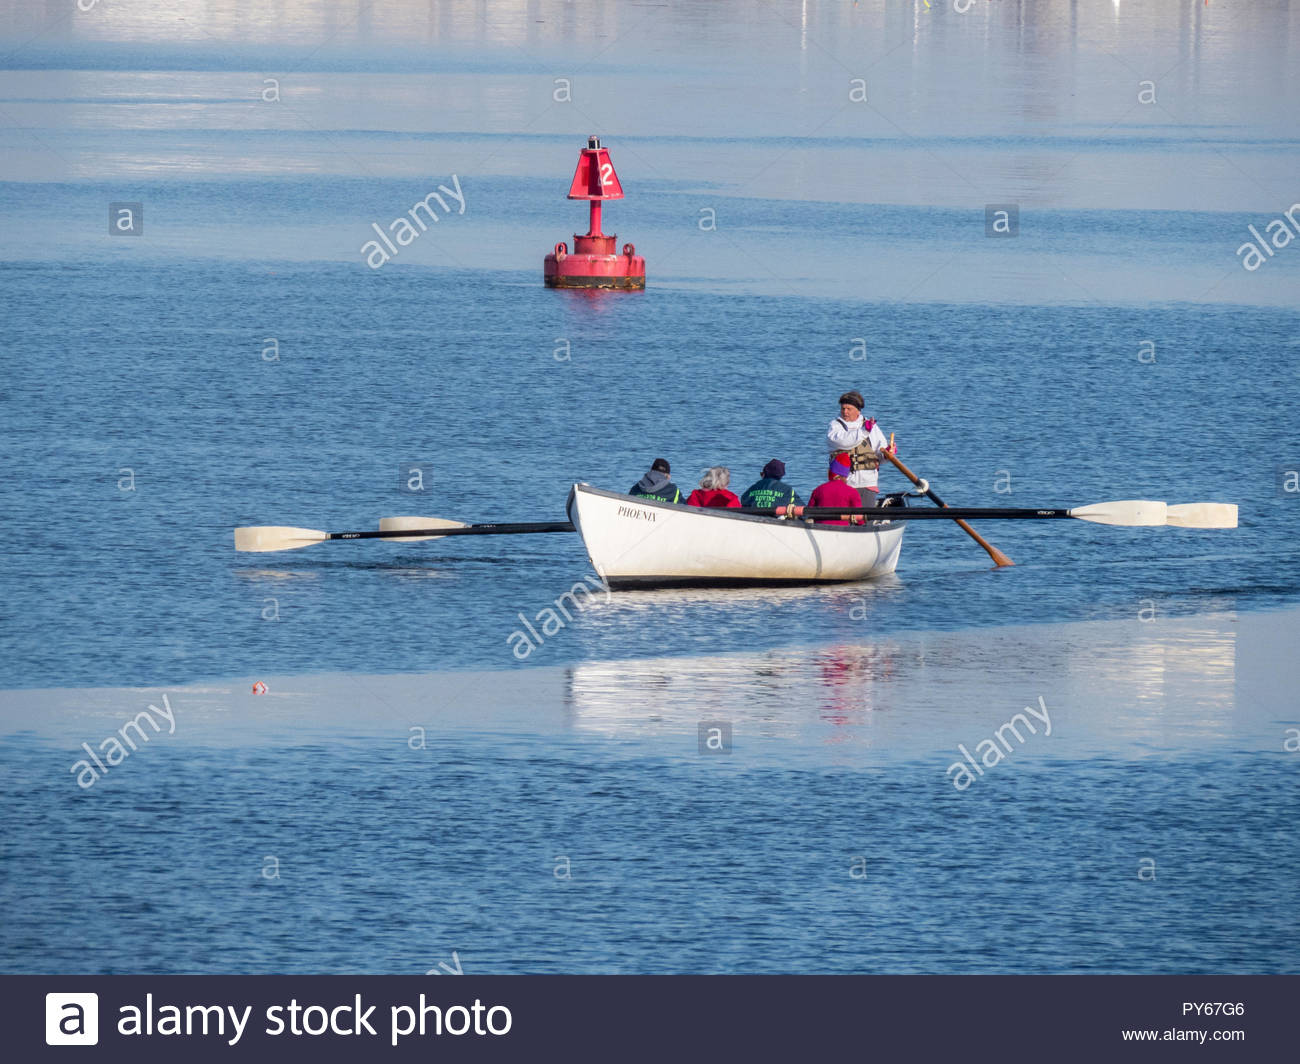 Fairhaven, Massachusetts, USA - March 1, 2018: Members of Buzzards Bay Rowing Club power whaleboat across the Acushnet River on calm day - Stock Image